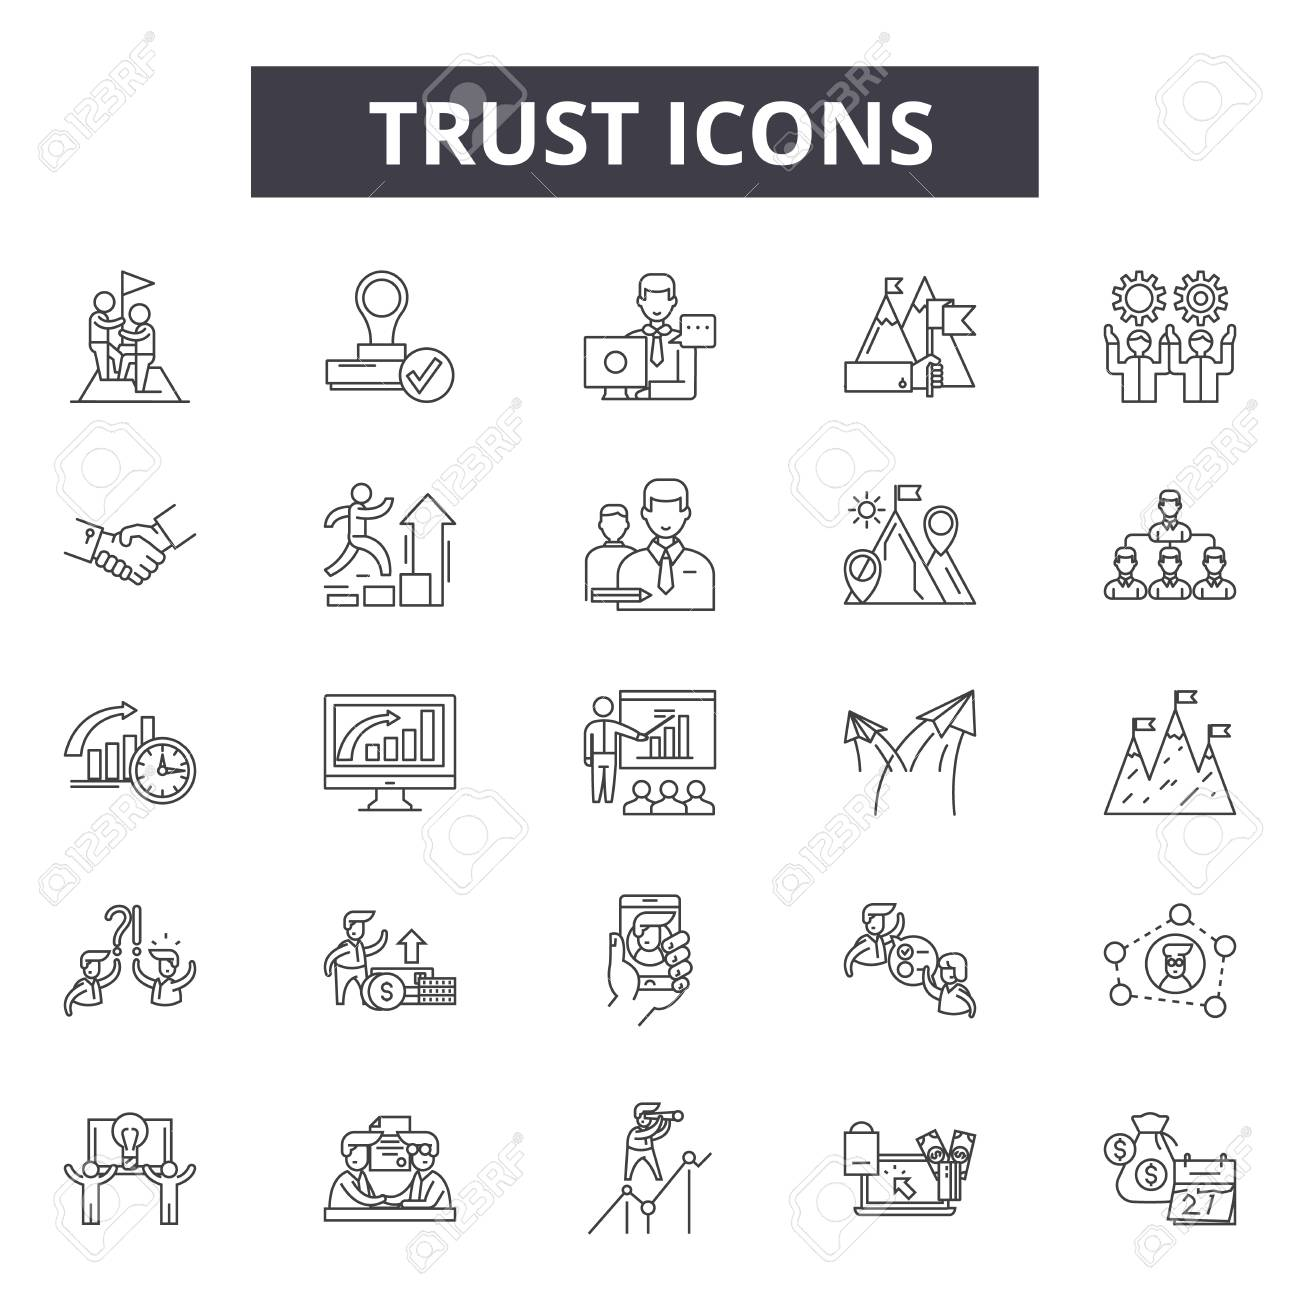 Trust line icons for web and mobile. Editable stroke signs. Trust outline concept illustrations - 119235317